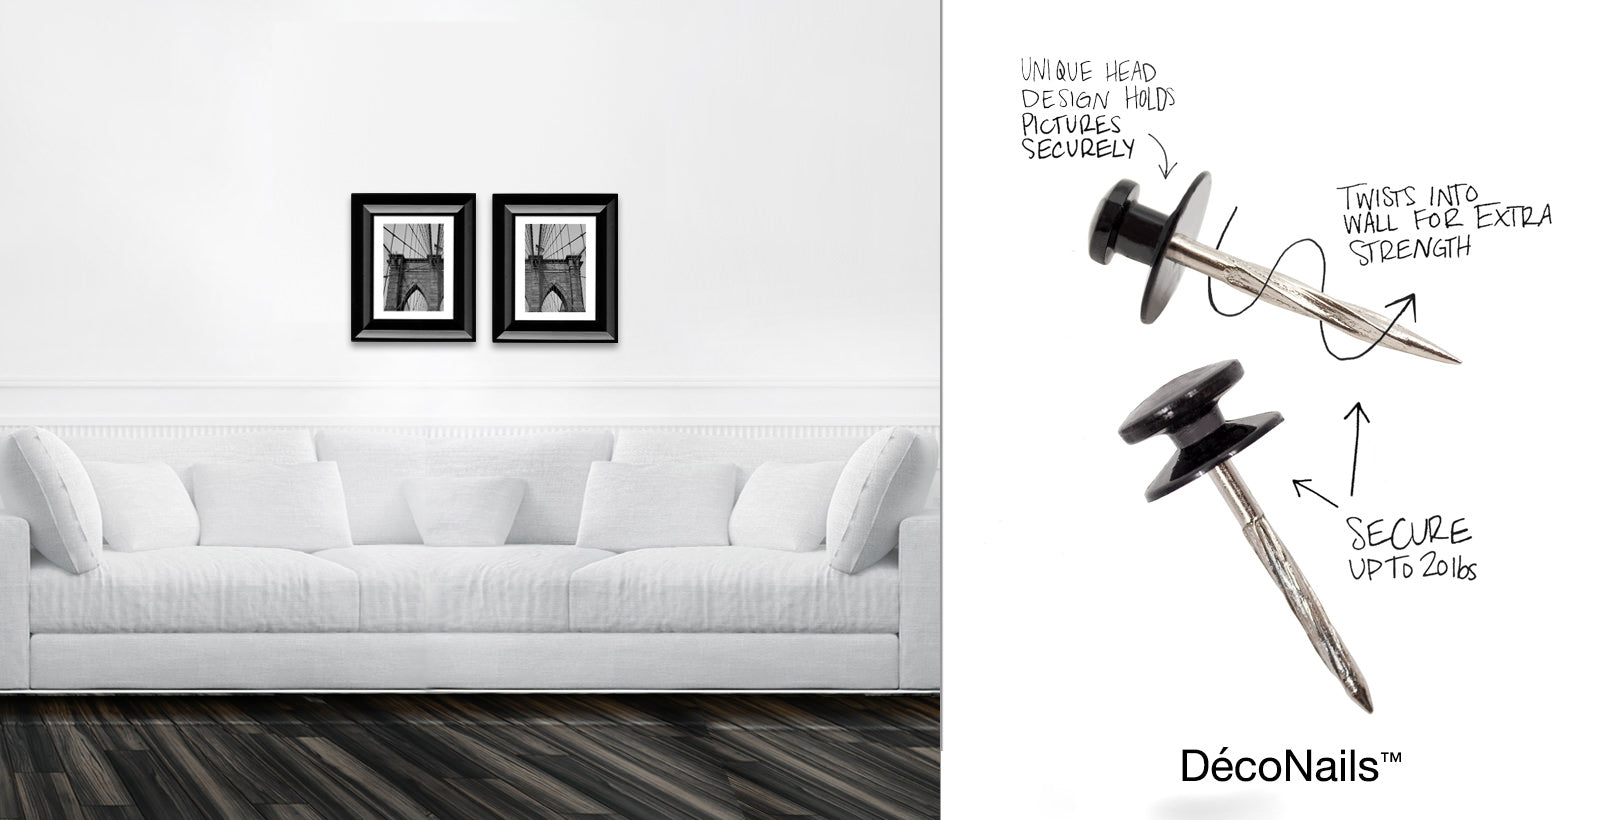 Hang wall decor in drywall using DécoNails™